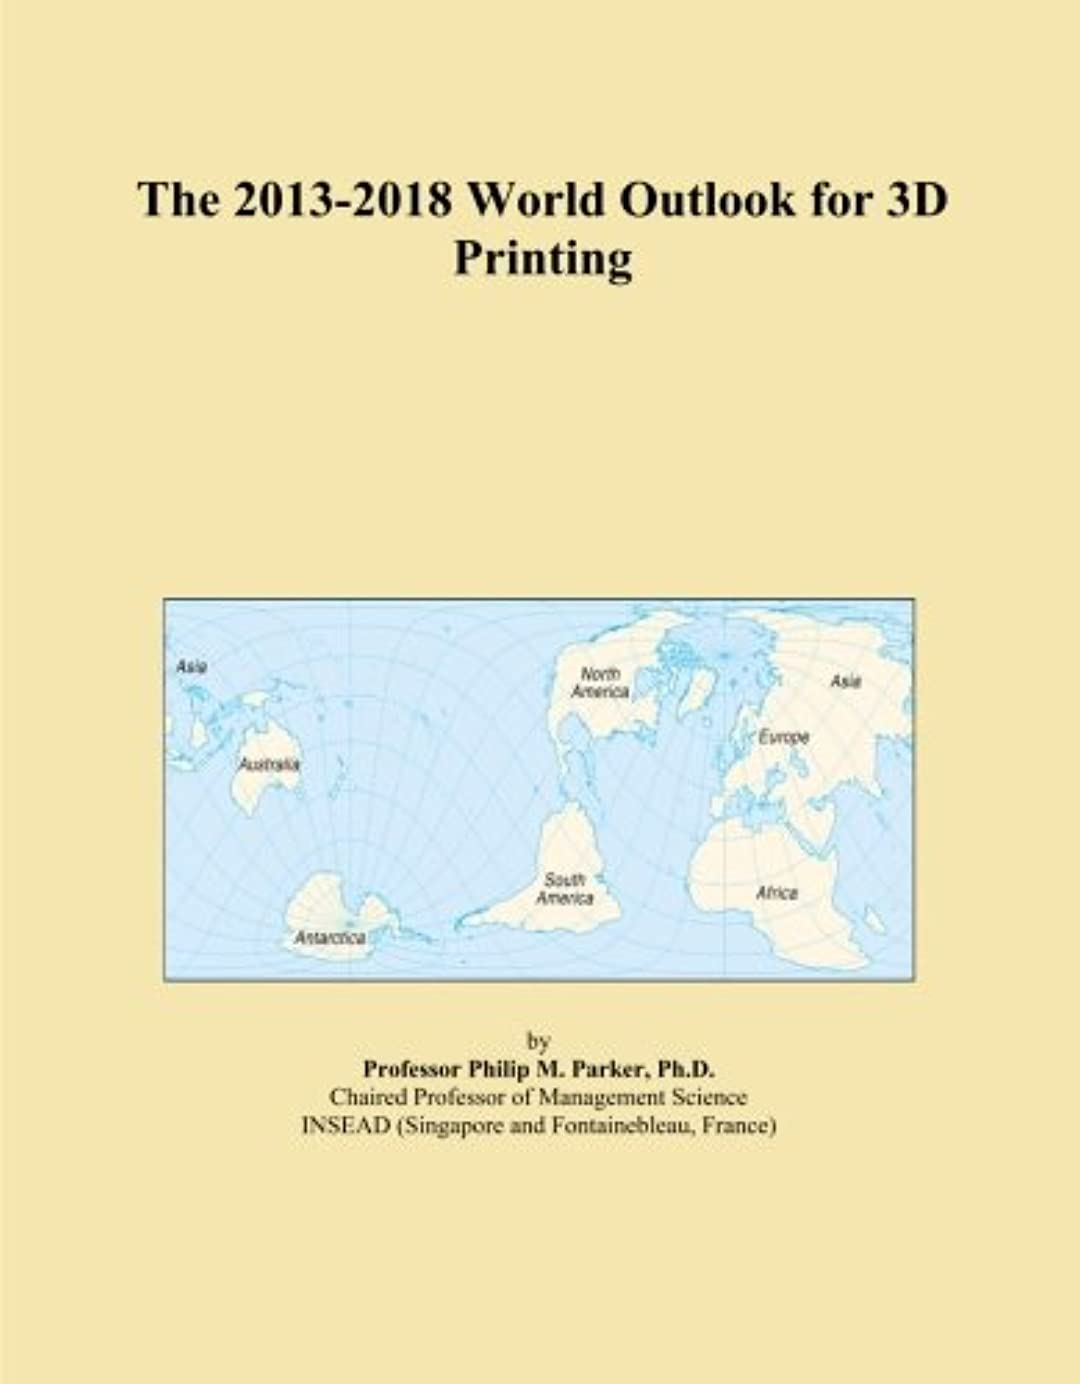 The 2013-2018 World Outlook for 3D Printing